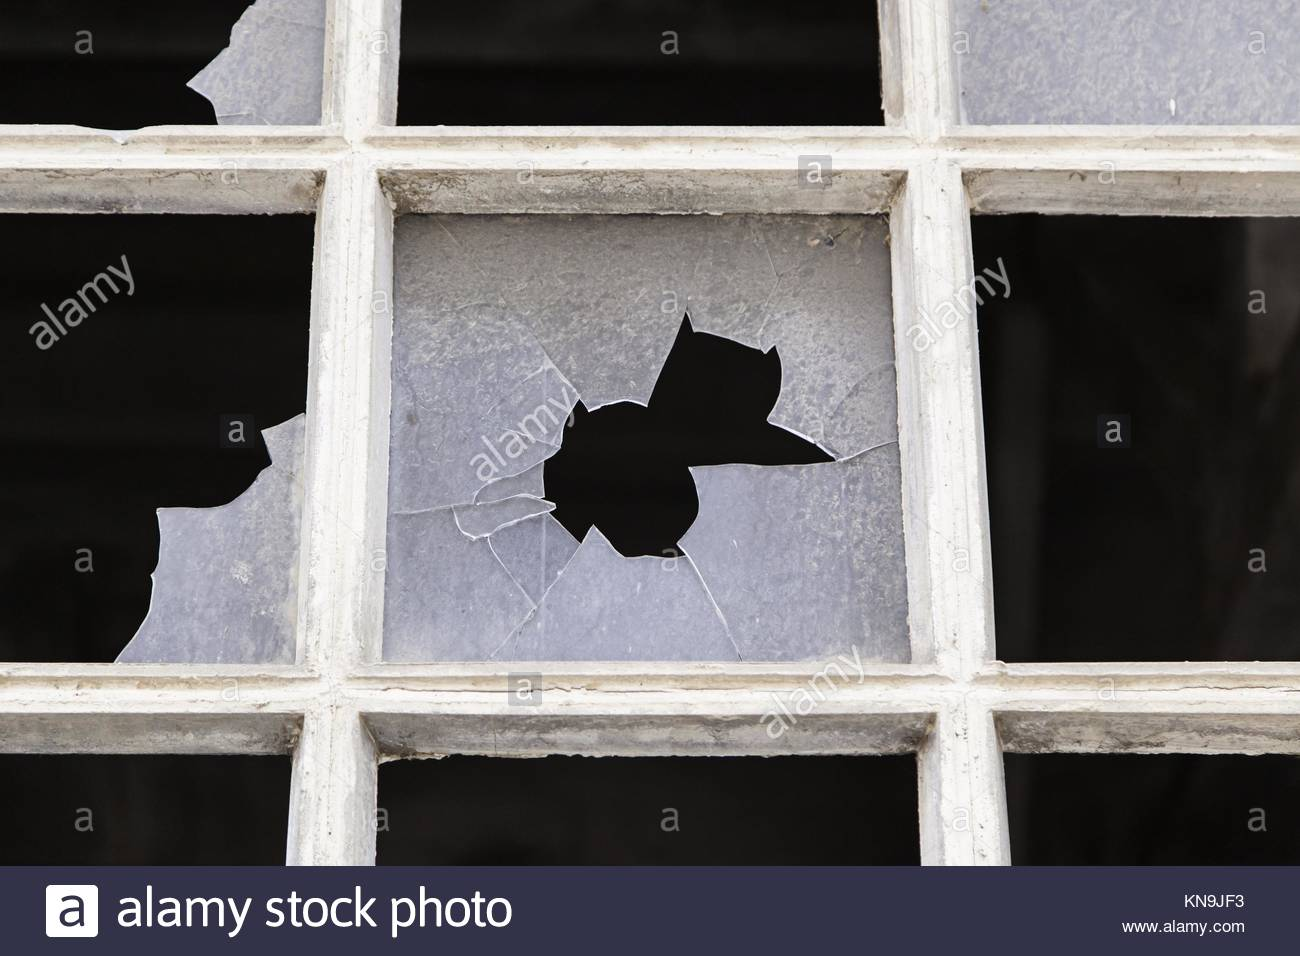 Old window with broken glass, detail of an abandoned factory, ruin and crime in Spain Stock Photo